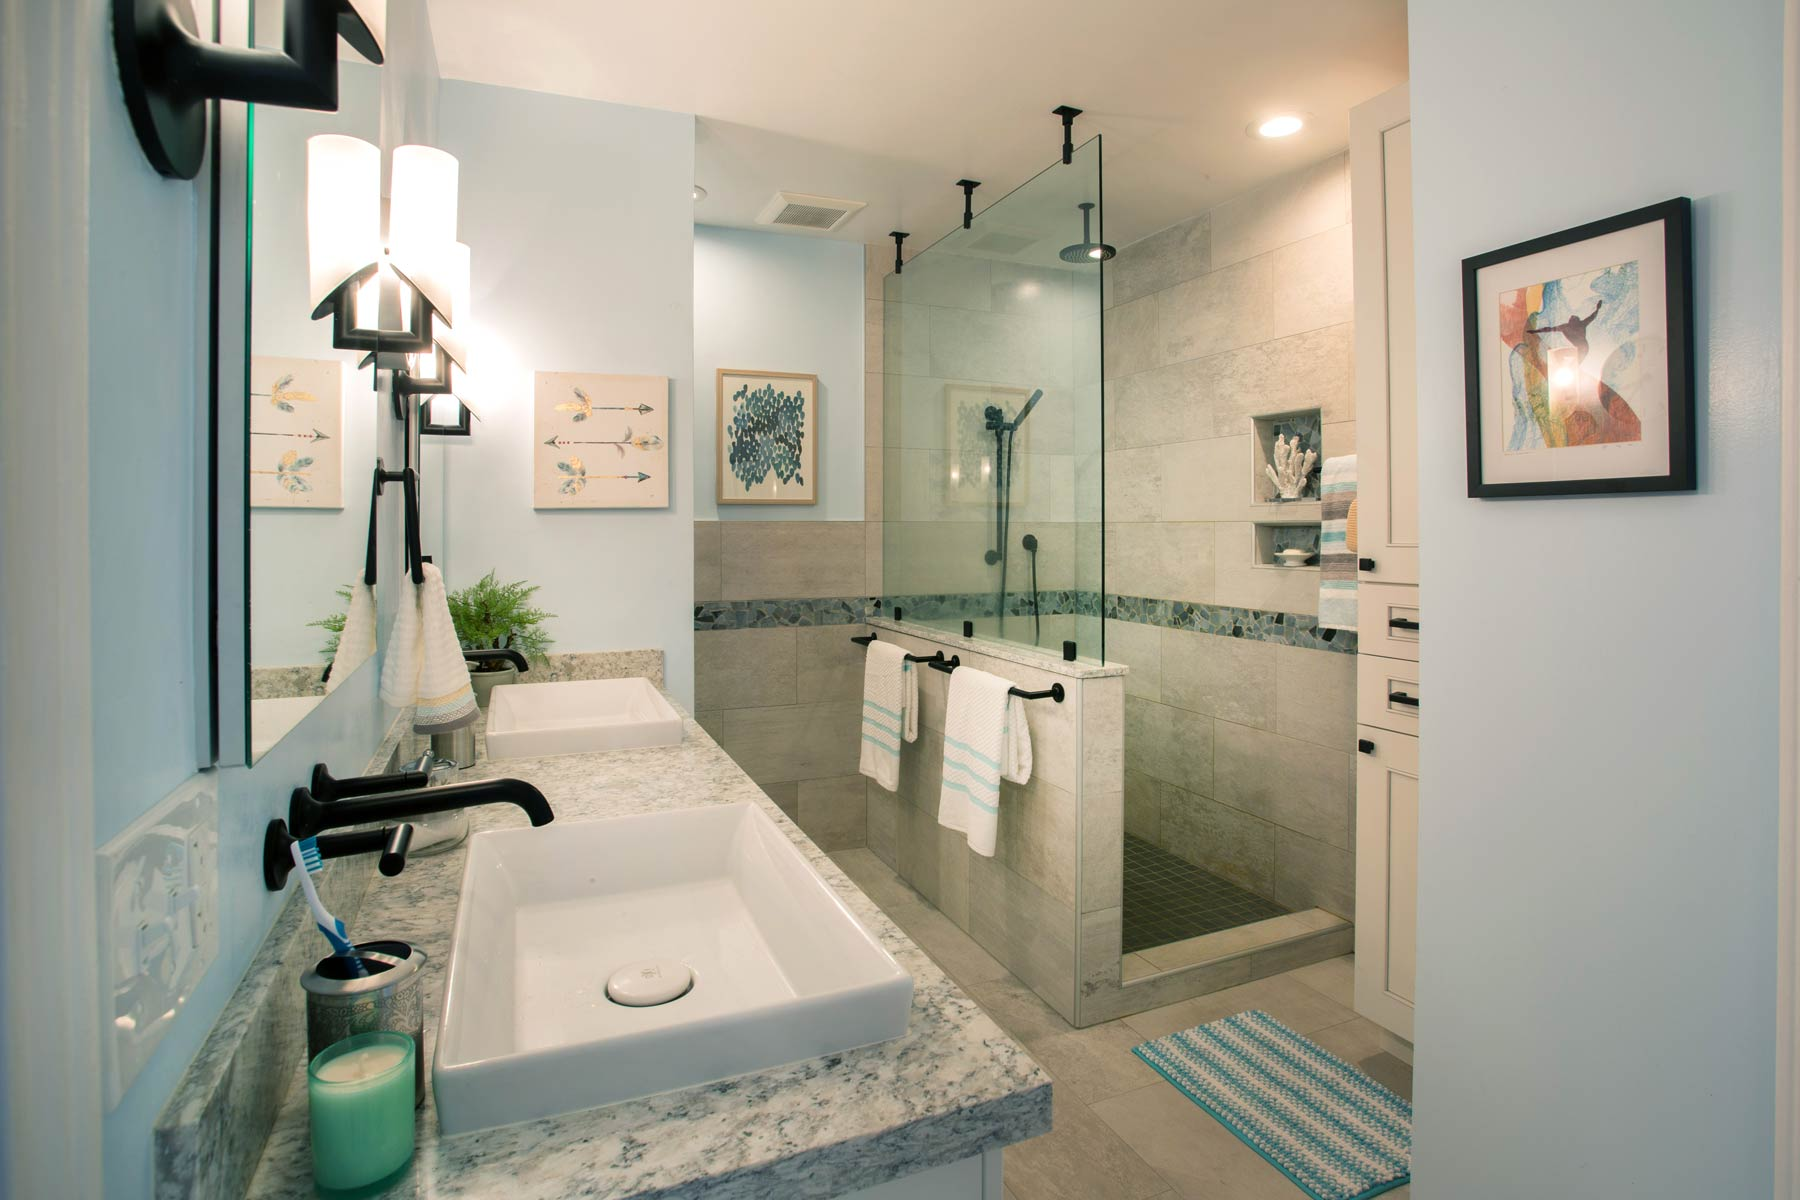 Hawaii master bathroom remodel by Accent Design